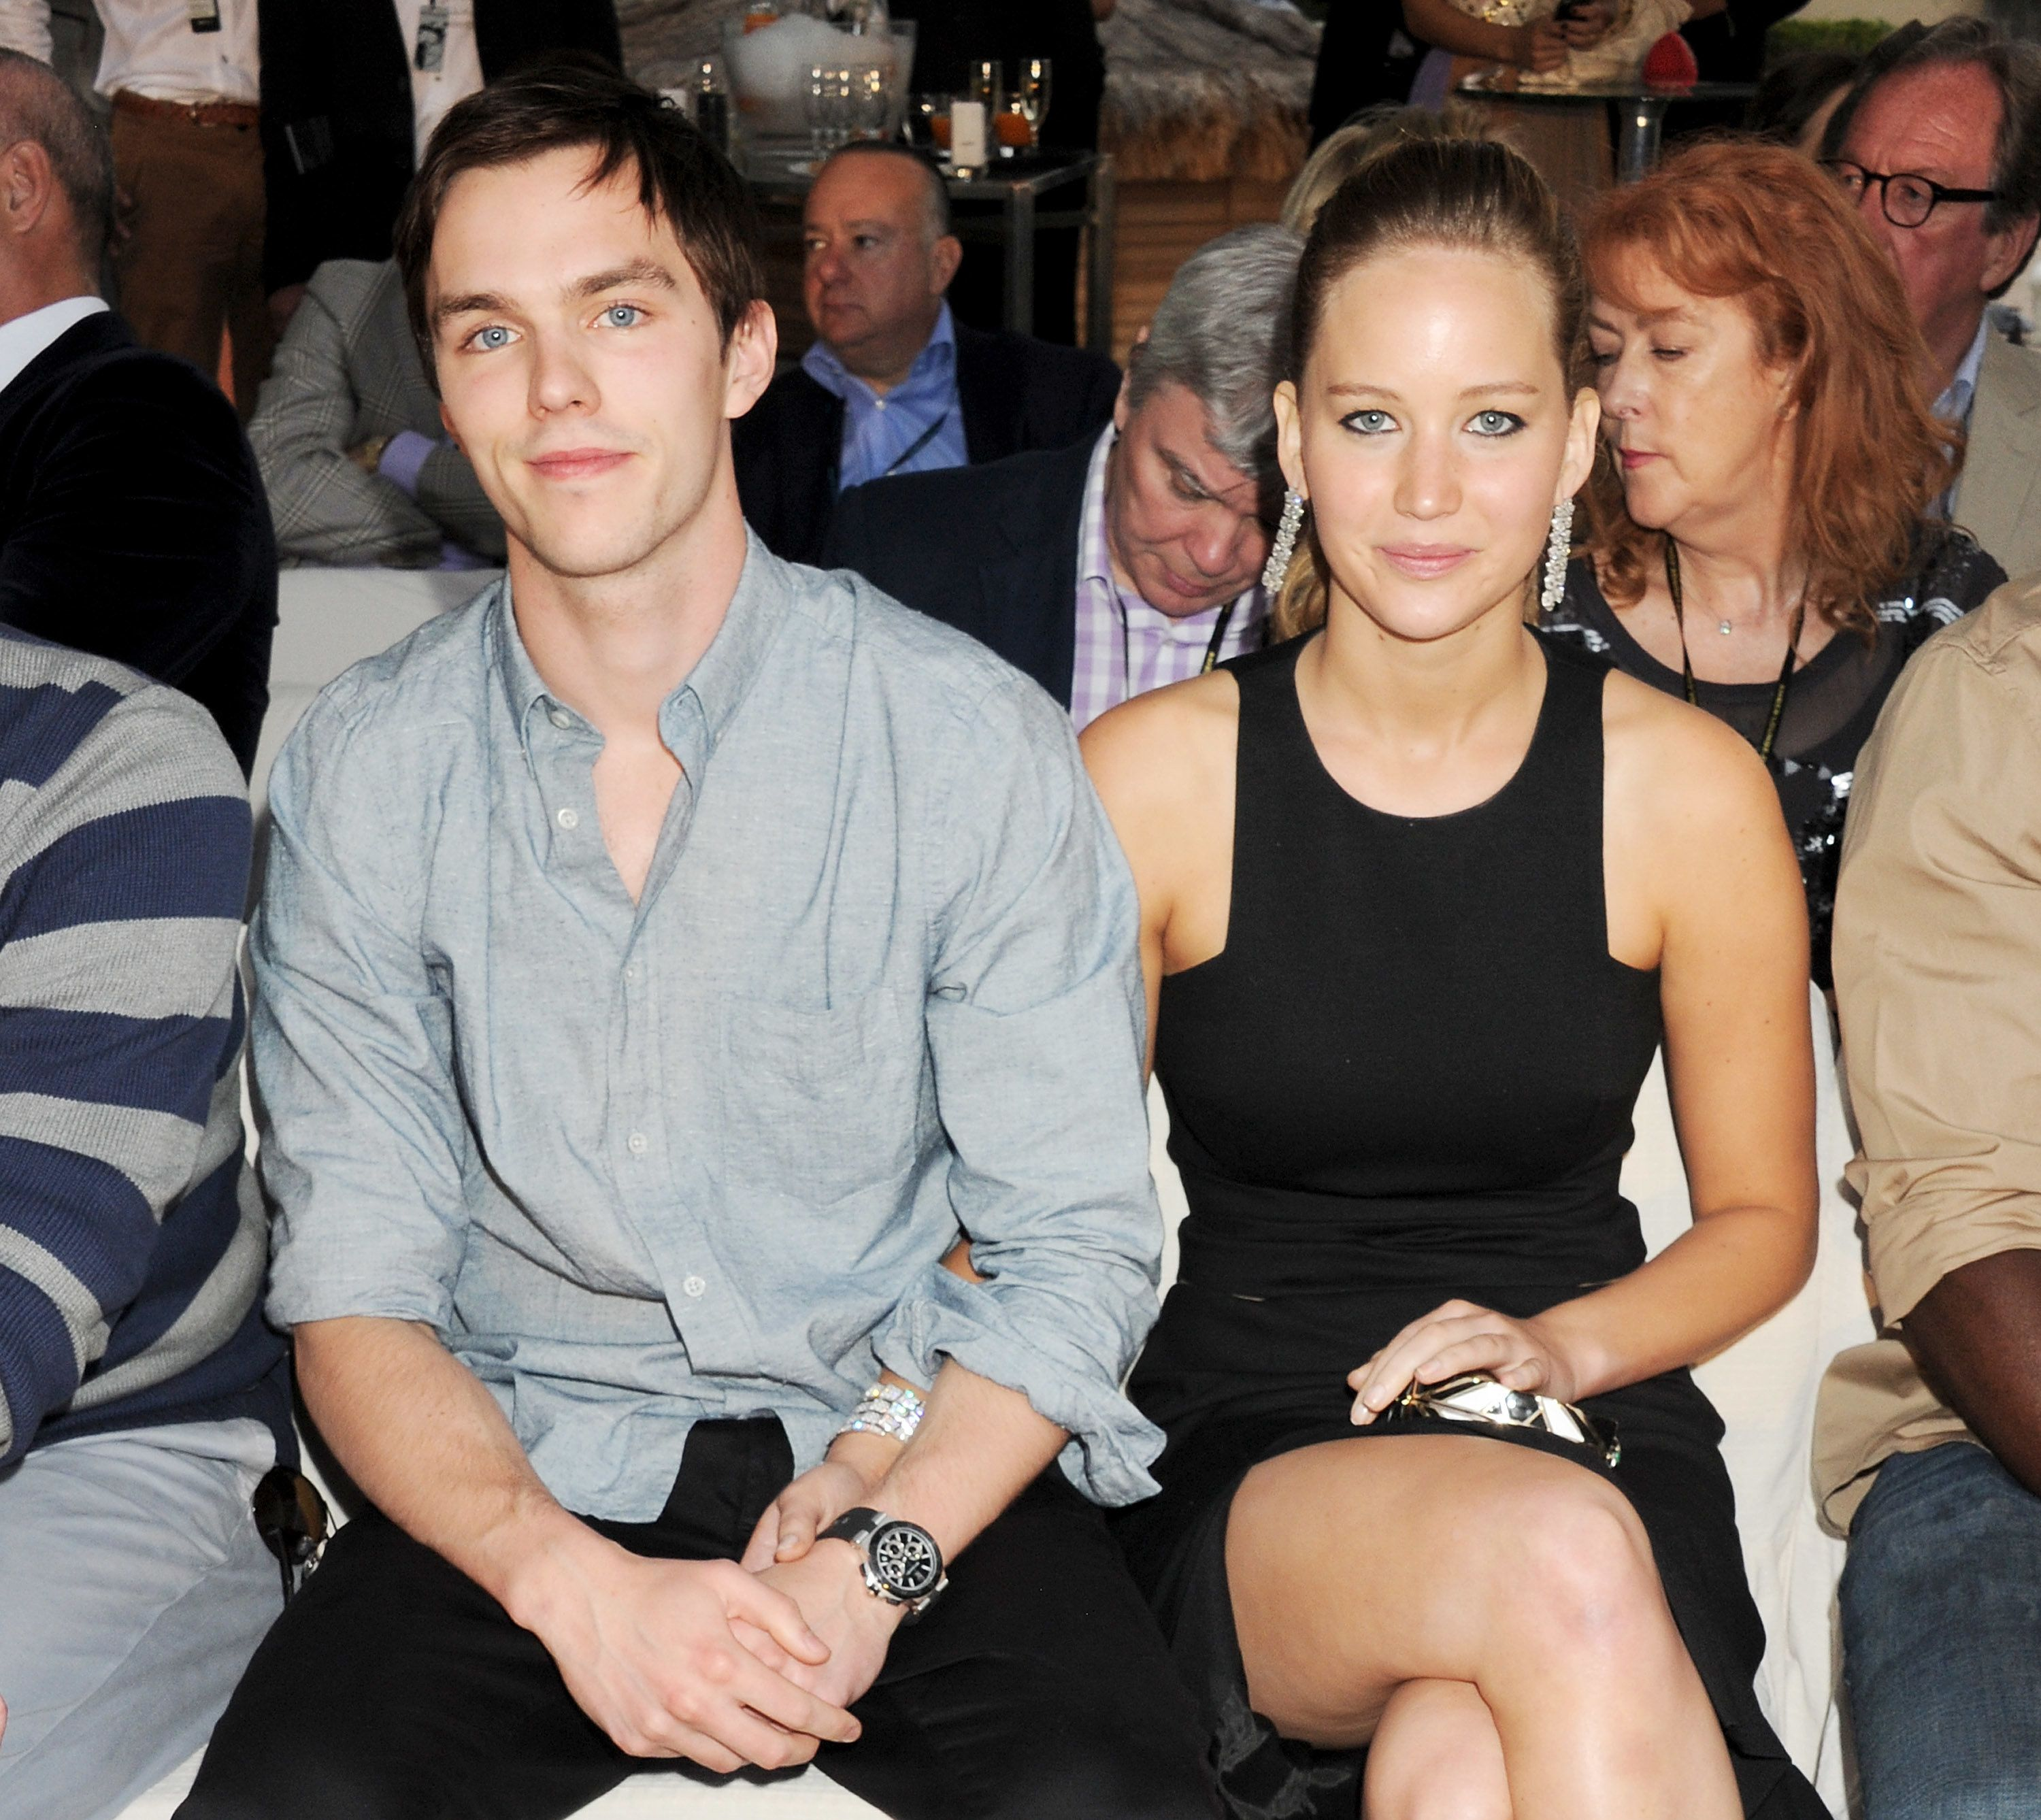 MONACO - MAY 25:  (EMBARGOED FOR PUBLICATION IN UK TABLOID NEWSPAPERS UNTIL 48 HOURS AFTER CREATE DATE AND TIME. MANDATORY CREDIT PHOTO BY DAVE M. BENETT/GETTY IMAGES REQUIRED)  Actors Nicholas Hoult (L) and Jennifer Lawrence attend a cocktail reception during Amber Lounge Fashion Monaco 2012 at Le Meridien Beach Plaza Hotel on May 25, 2012 in Monaco, Monaco  (Photo by Dave M. Benett/Getty Images)